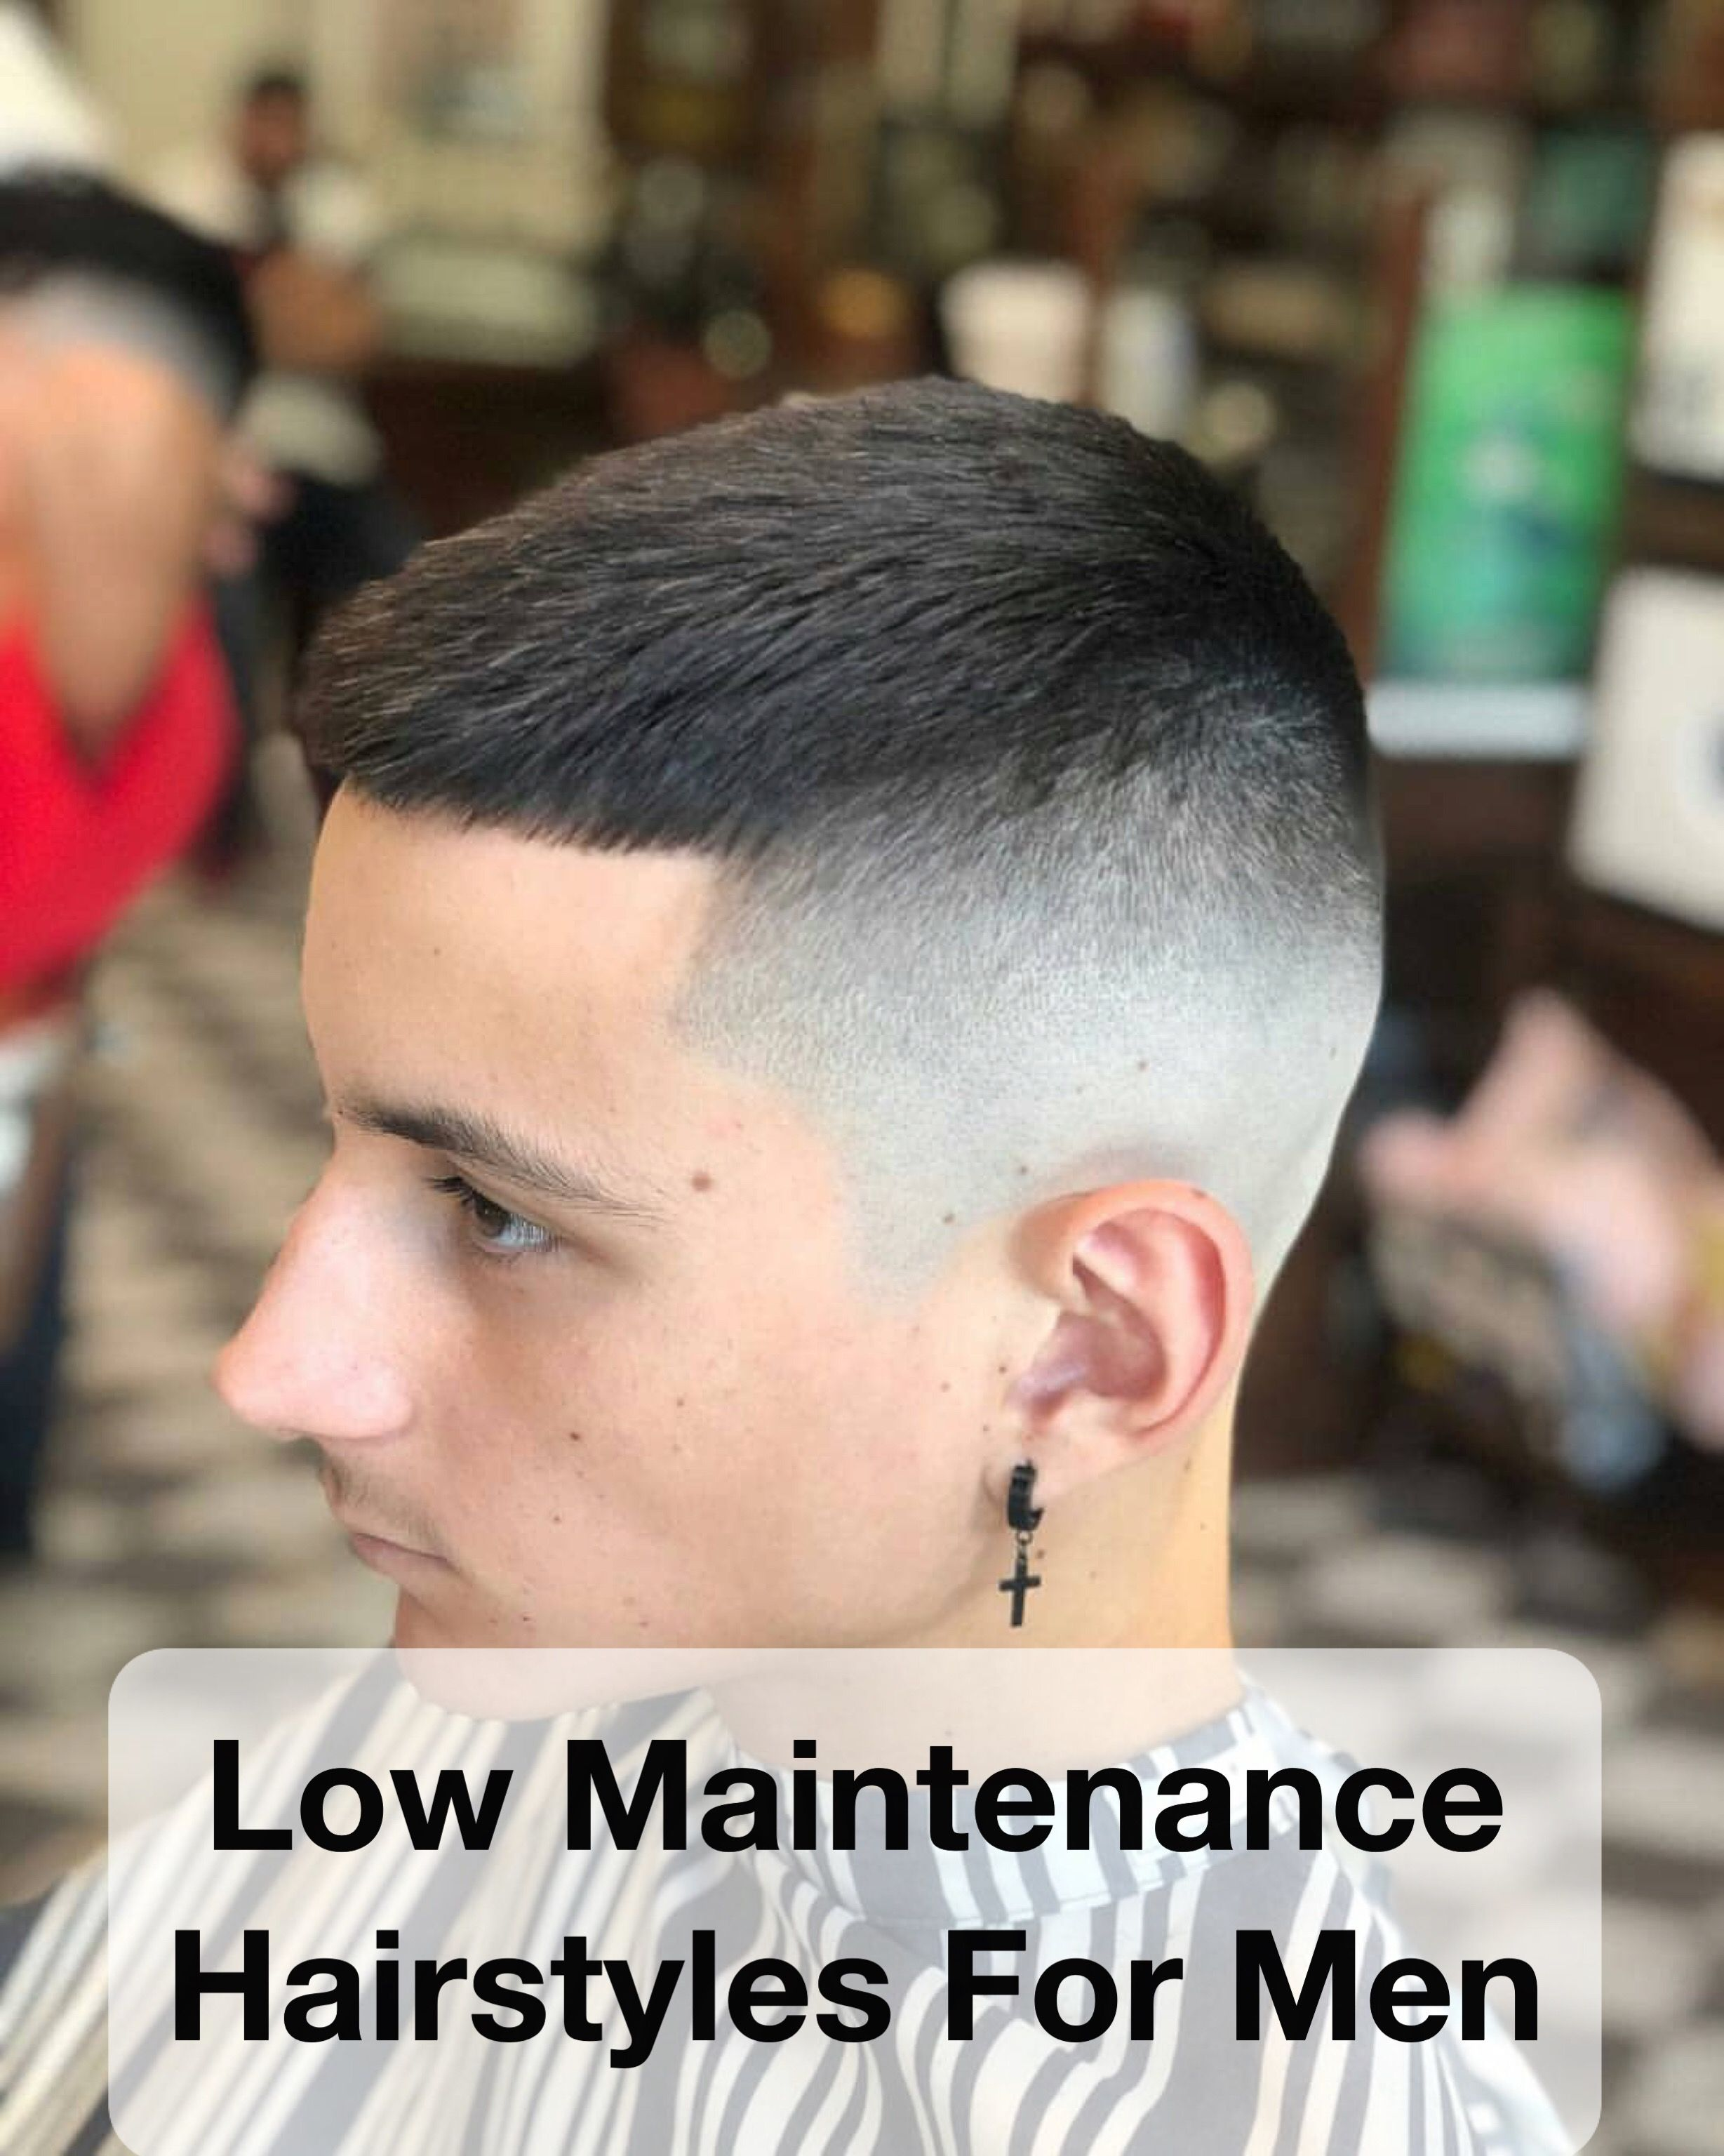 15 Top Low Maintenance Hairstyles For Men Men S Hairstyles Low Maintenance Hair Mens Hairstyles Types Of Fade Haircut